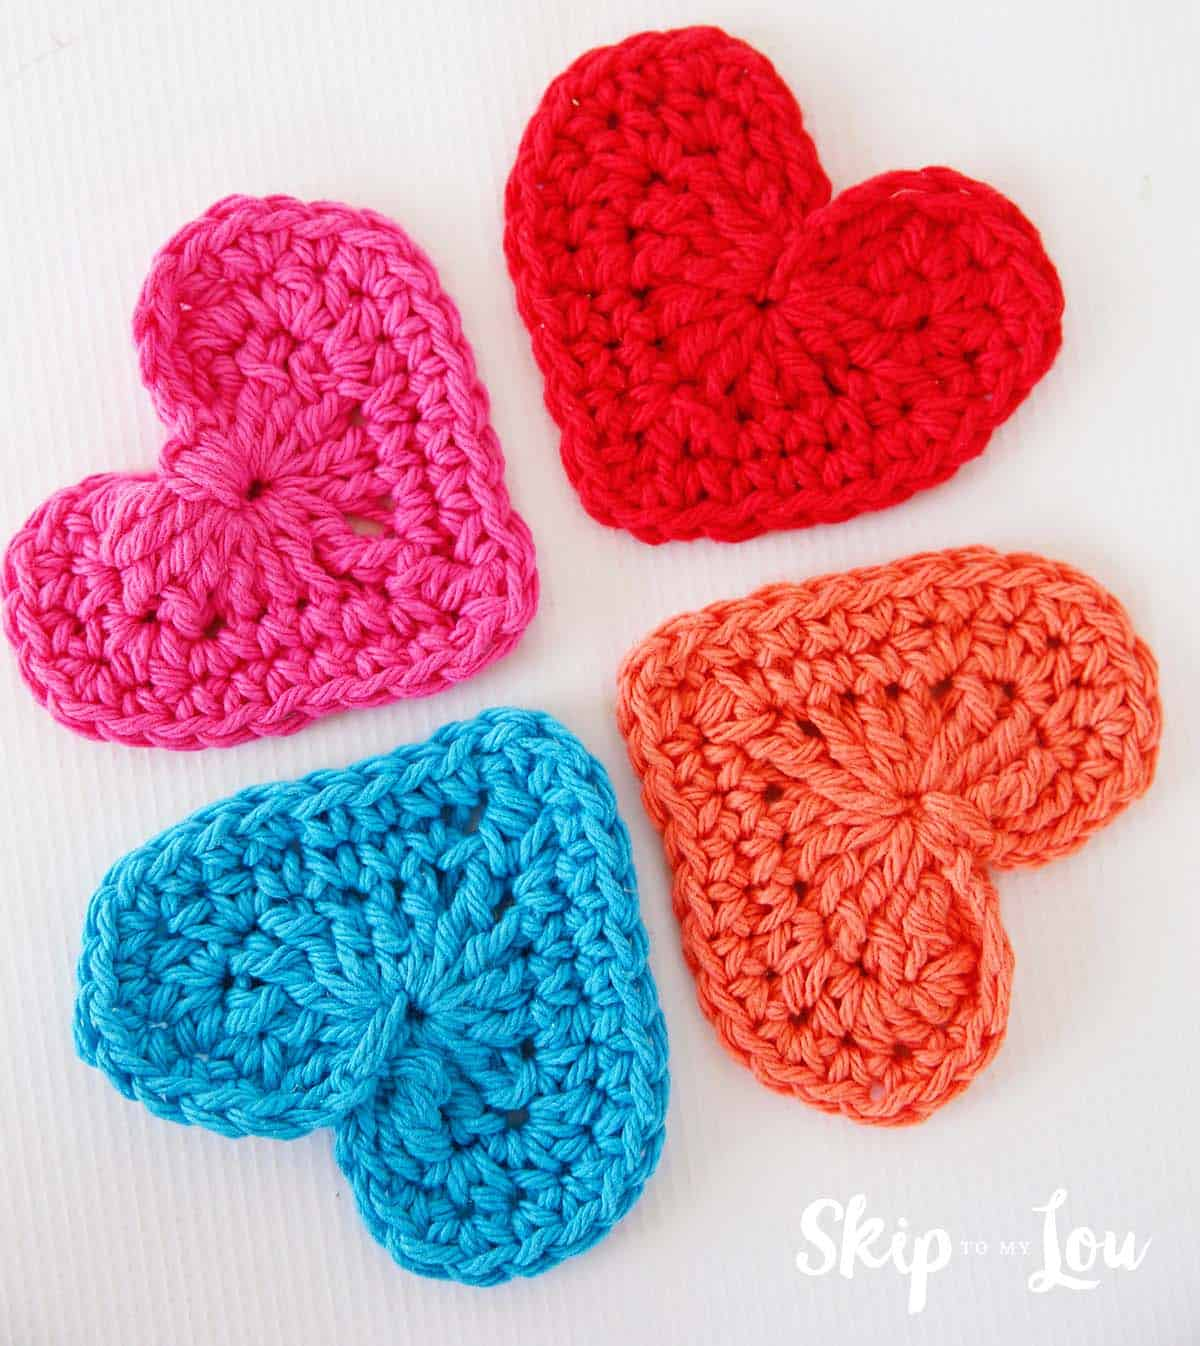 Easy Crochet Heart Garland Pattern | Skip To My Lou